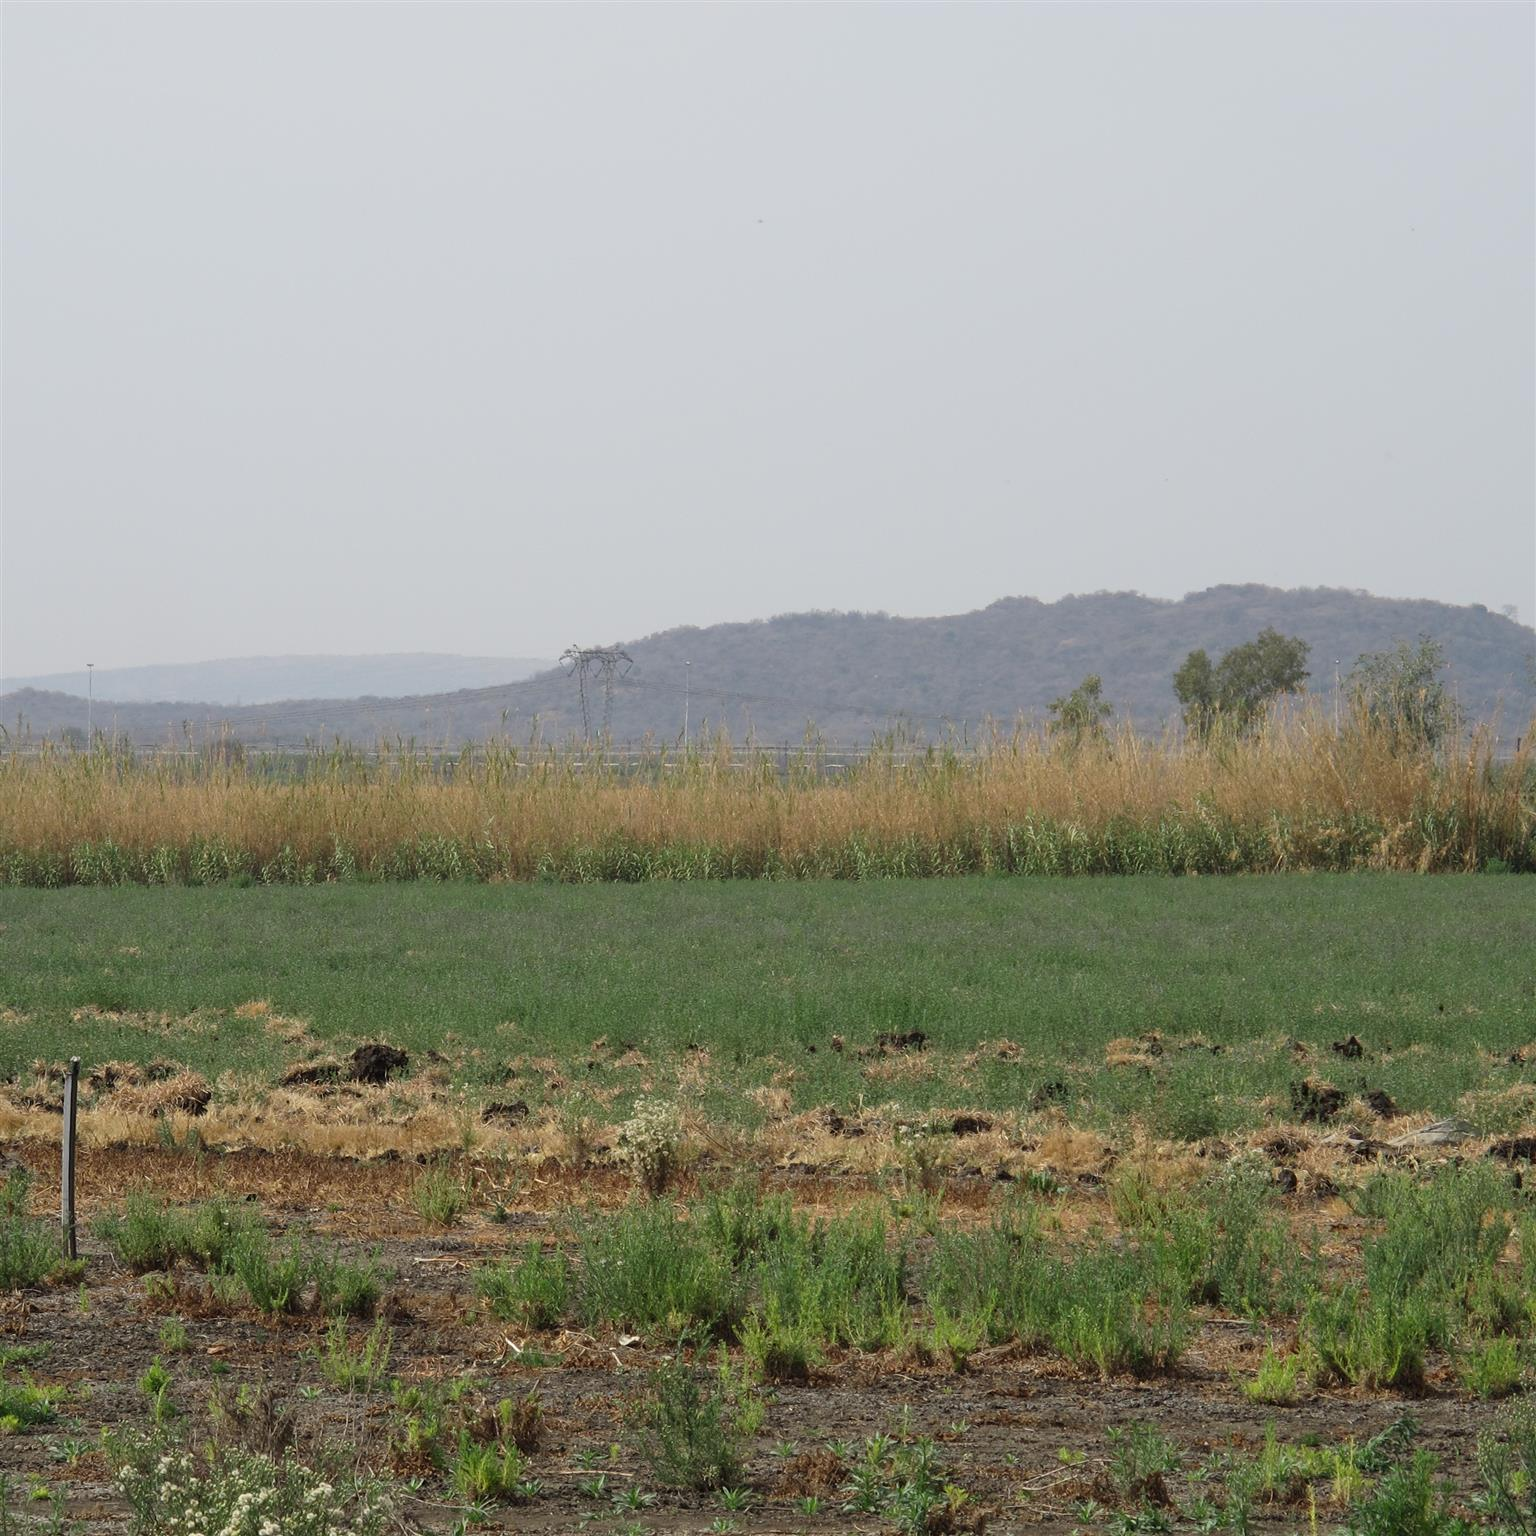 Bon Accord Irrigation land.